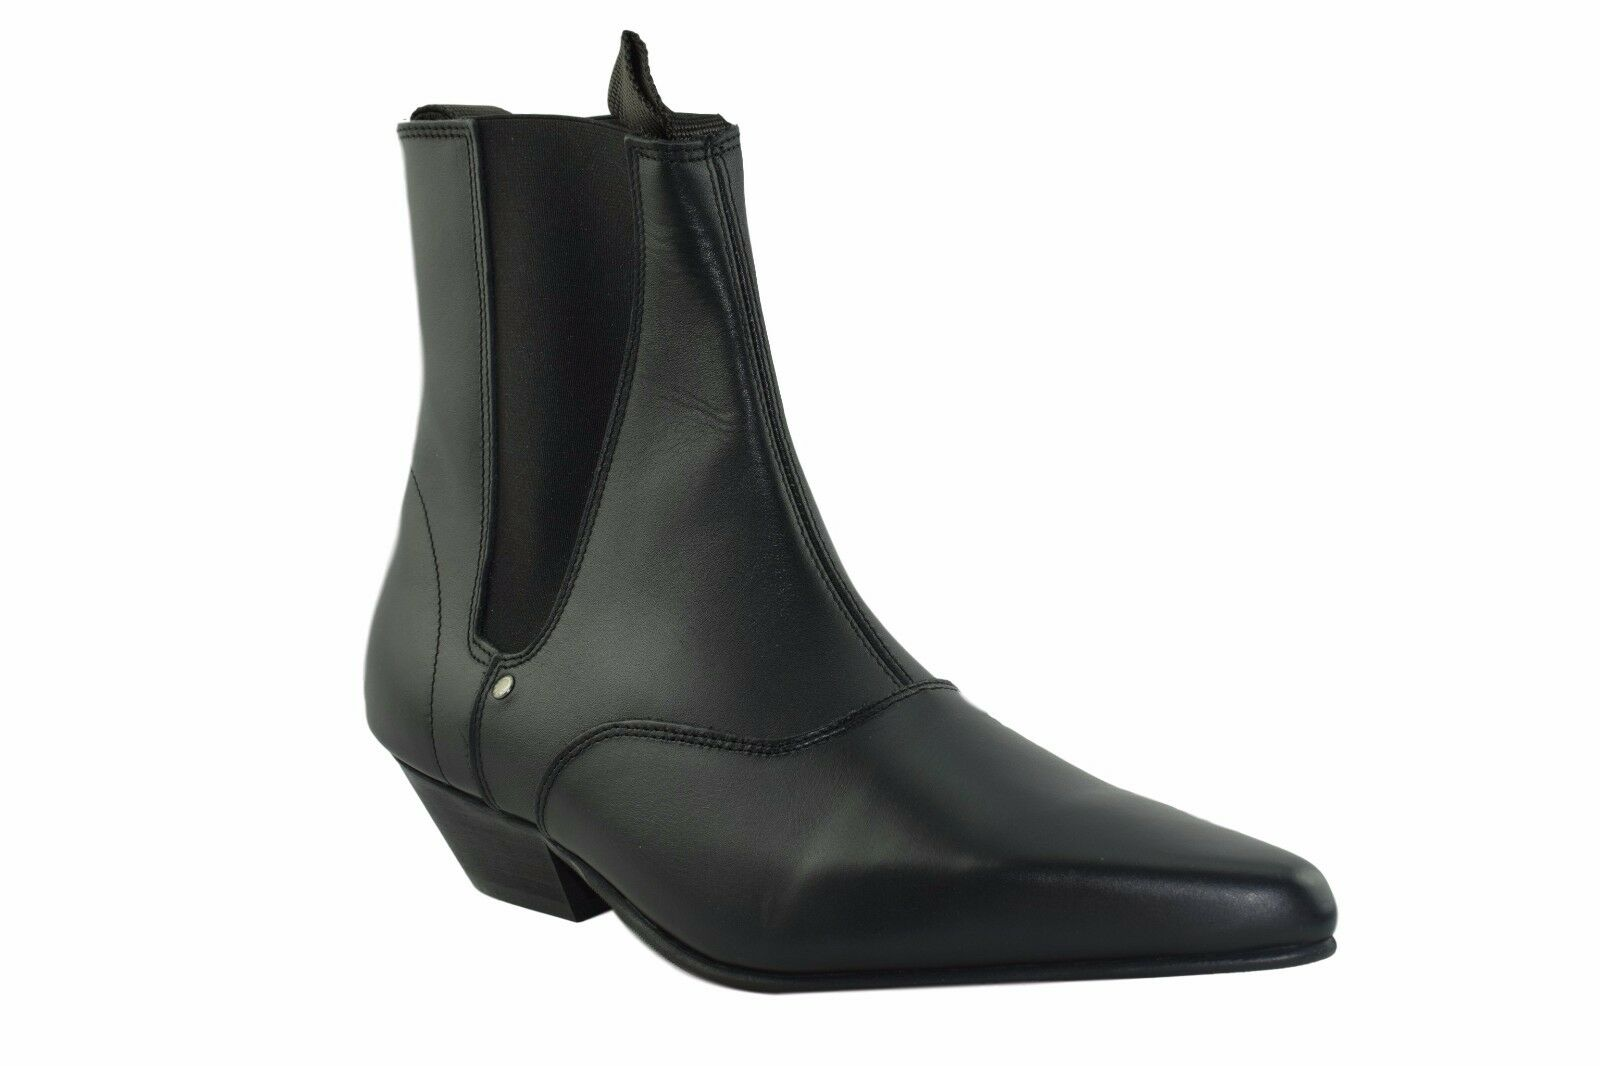 Steel Ground schwarz Leder Chelsea Stiefel Cuban Heel Ankle Beat Boot Sb002Z92